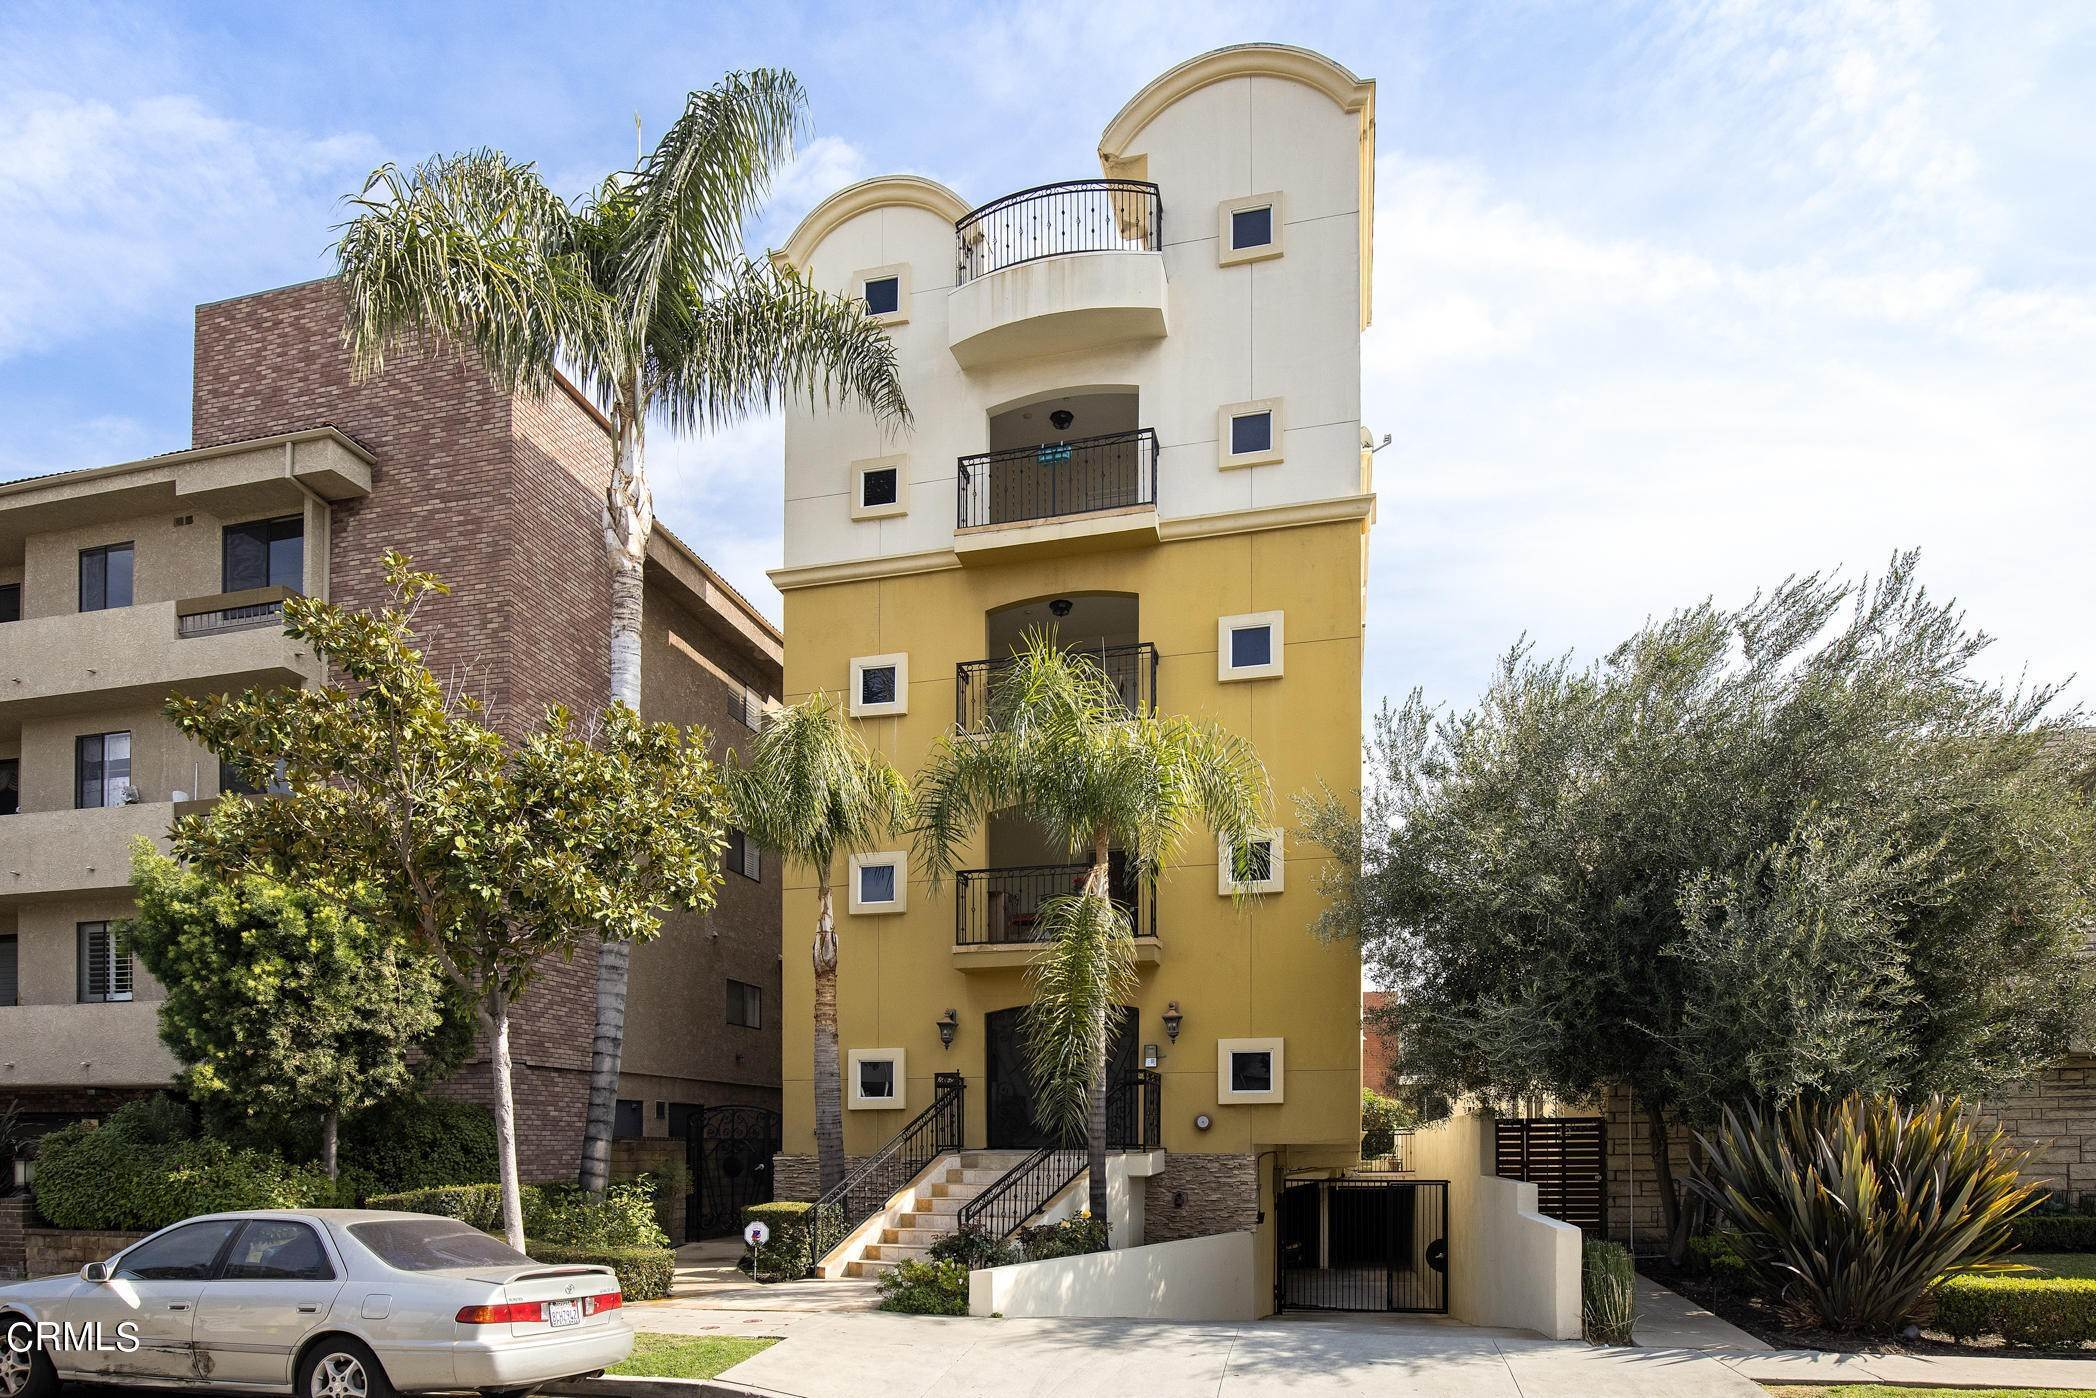 3. Condominiums for Sale at 836 South Bedford Street #200 836 South Bedford Street Los Angeles, California 90035 United States